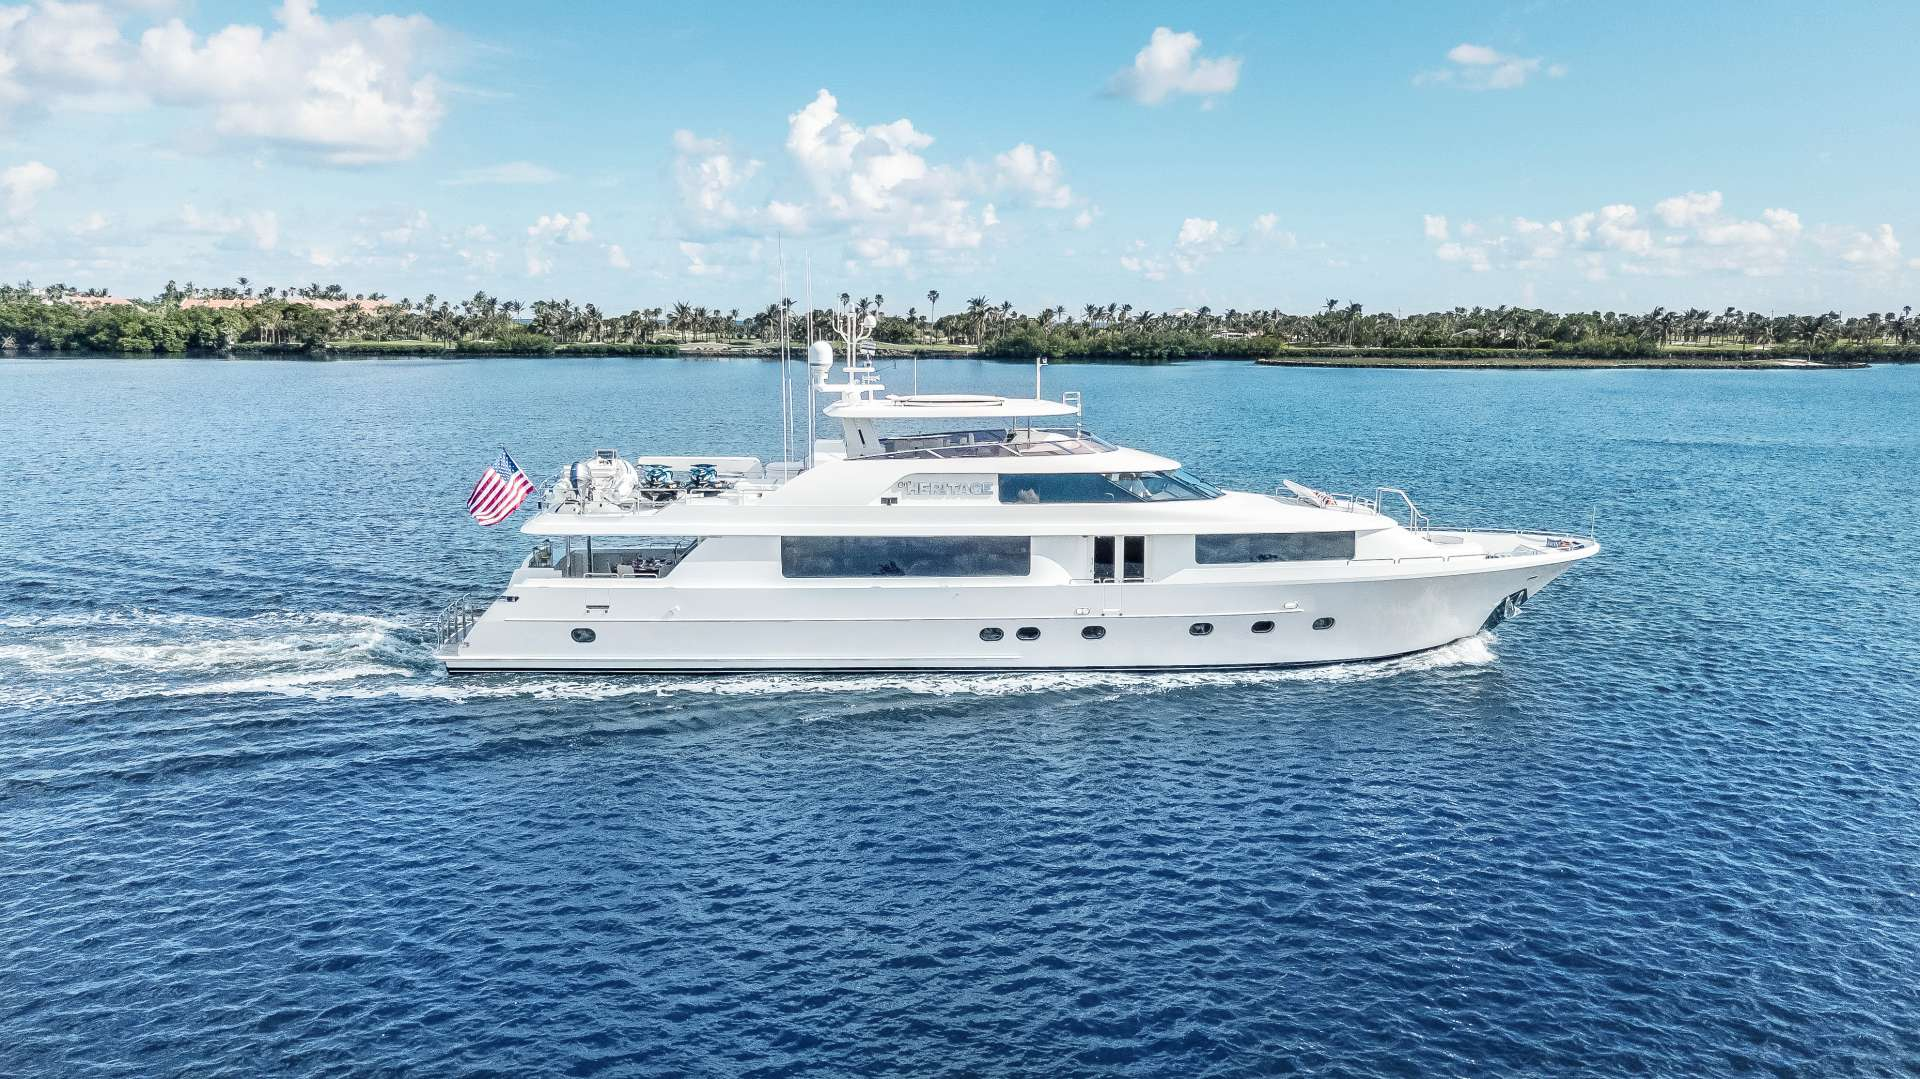 Main image of OUR HERITAGE yacht